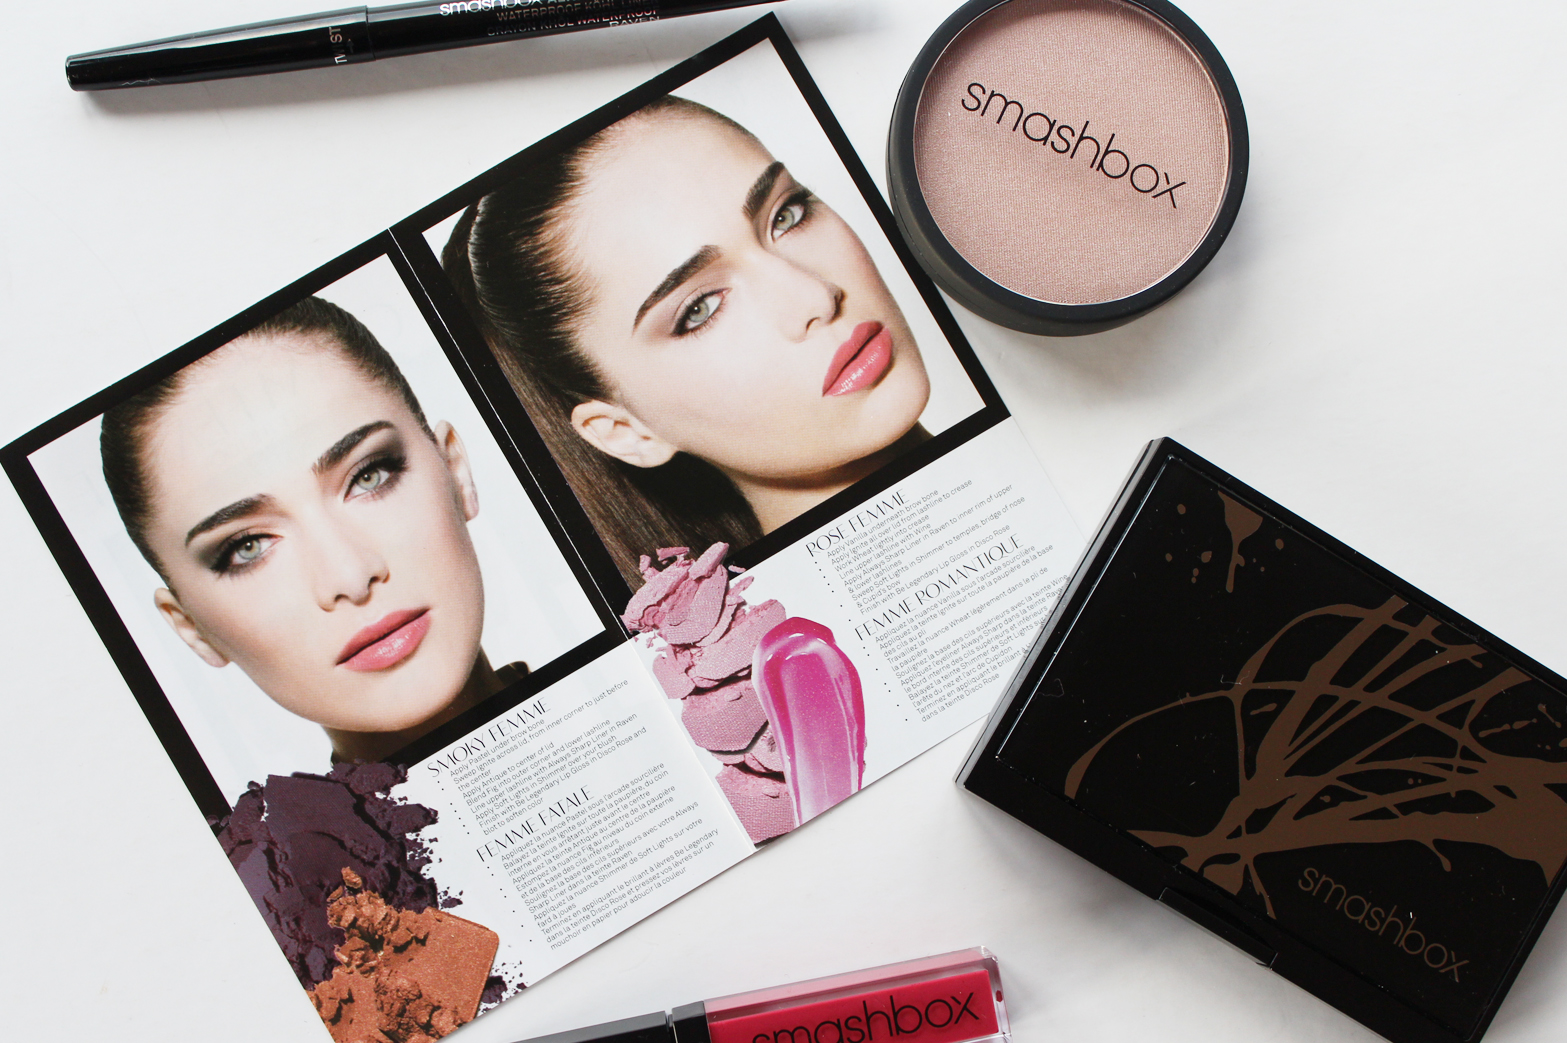 SMASHBOX | Glam Femme Makeup Set - Review + Swatches - CassandraMyee